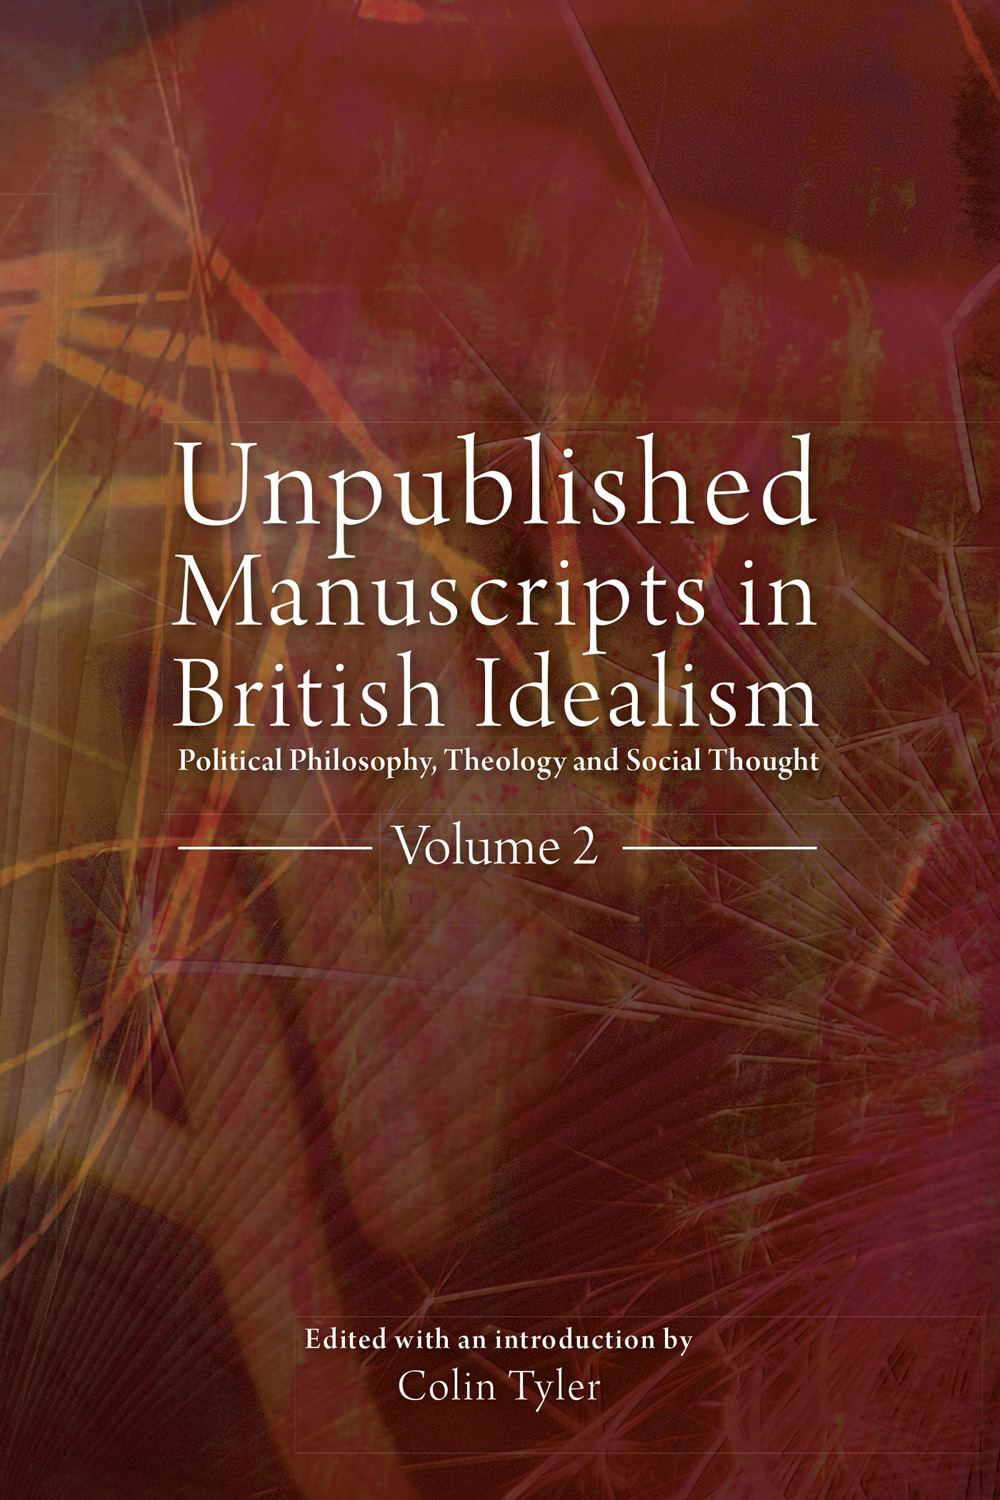 Unpublished Manuscripts in British Idealism - Volume 2